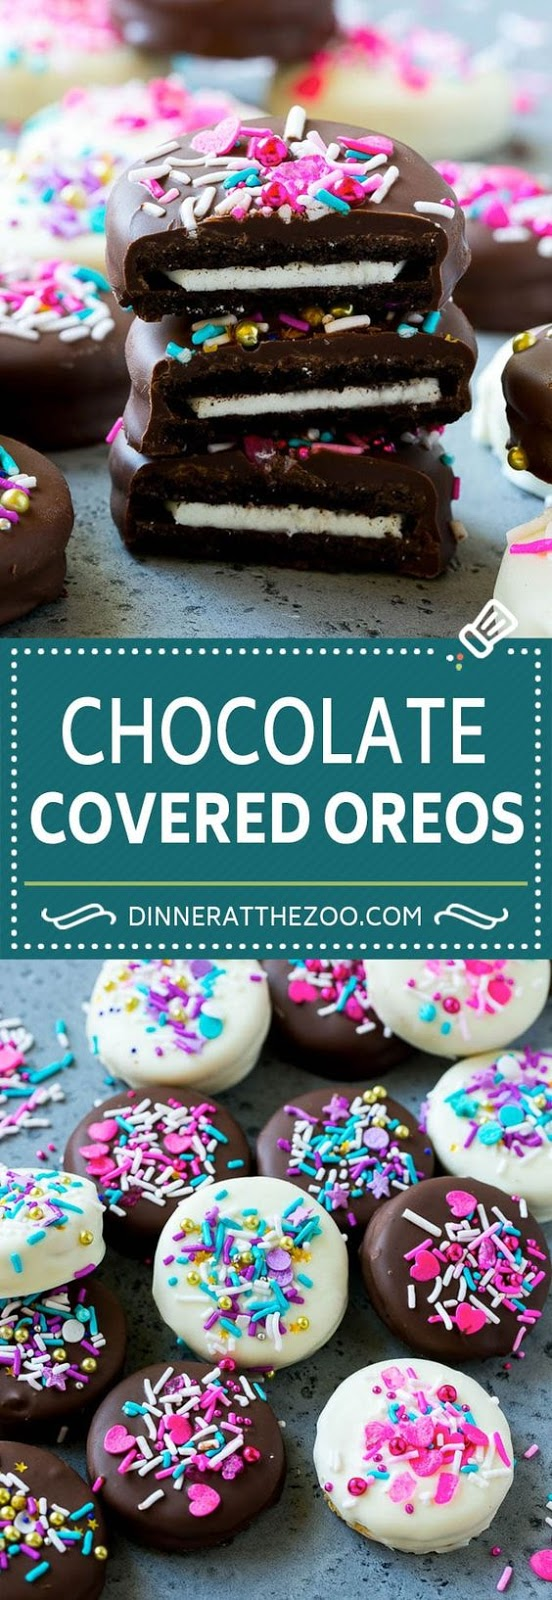 Chocolate Valentine's Covered Oreos